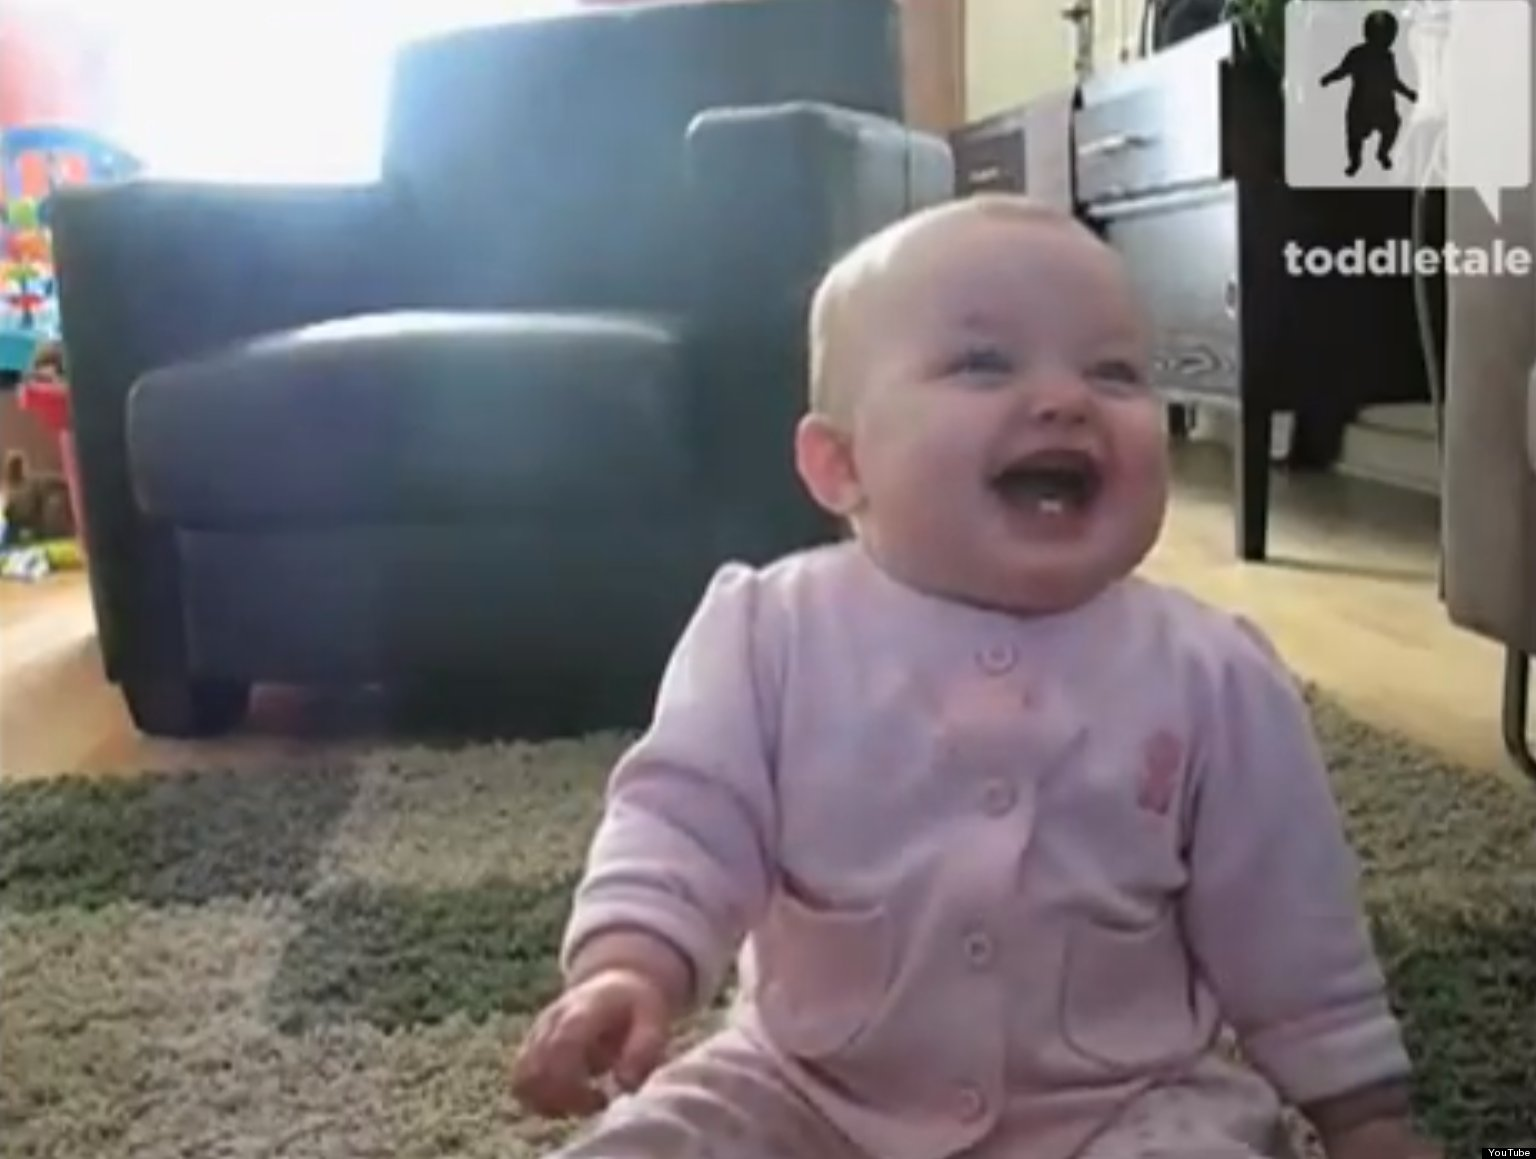 funny photos baby laughing - photo #18